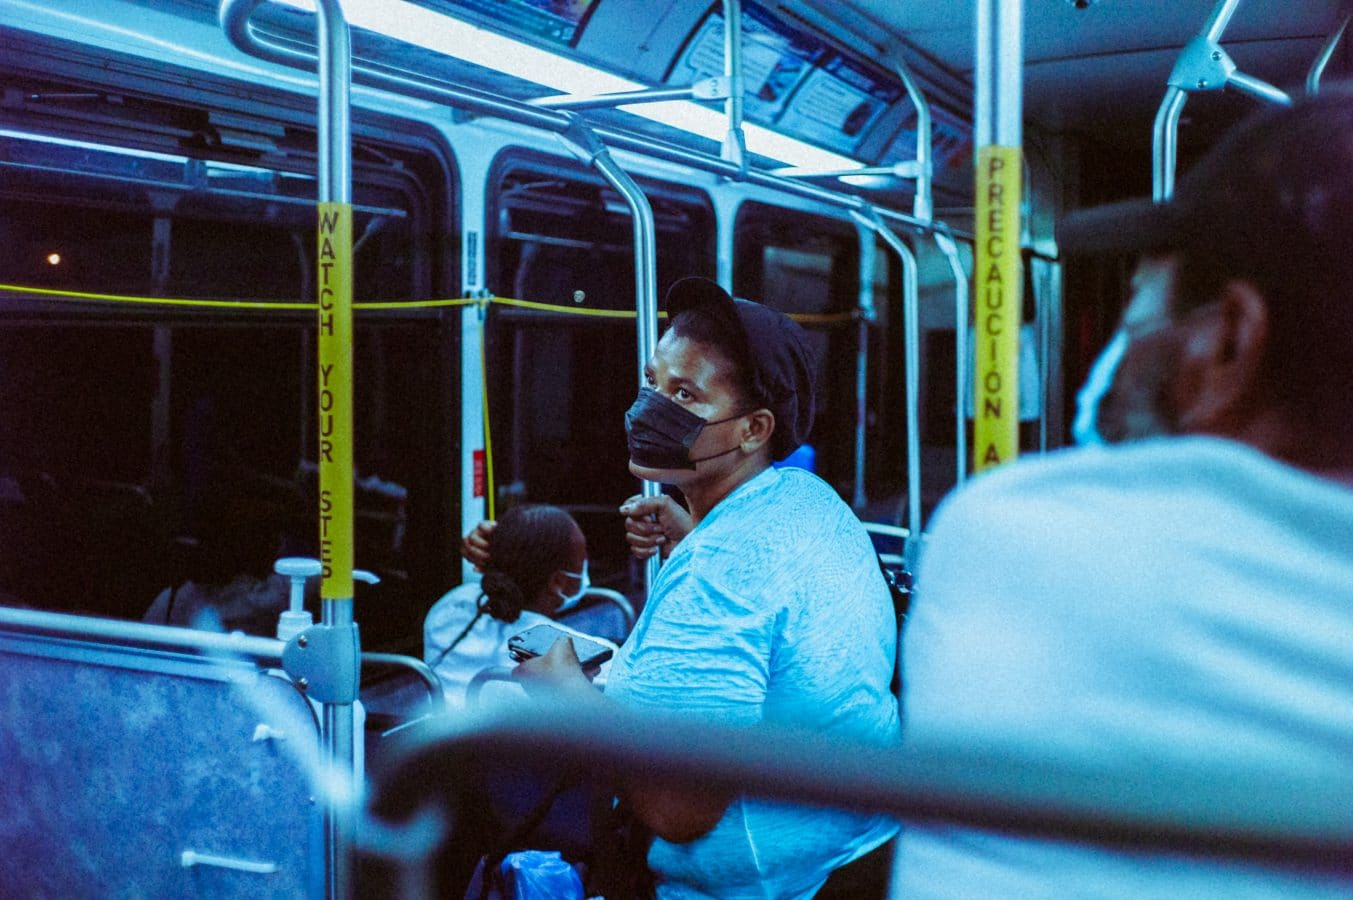 woman in blue sweater sitting on bus seat